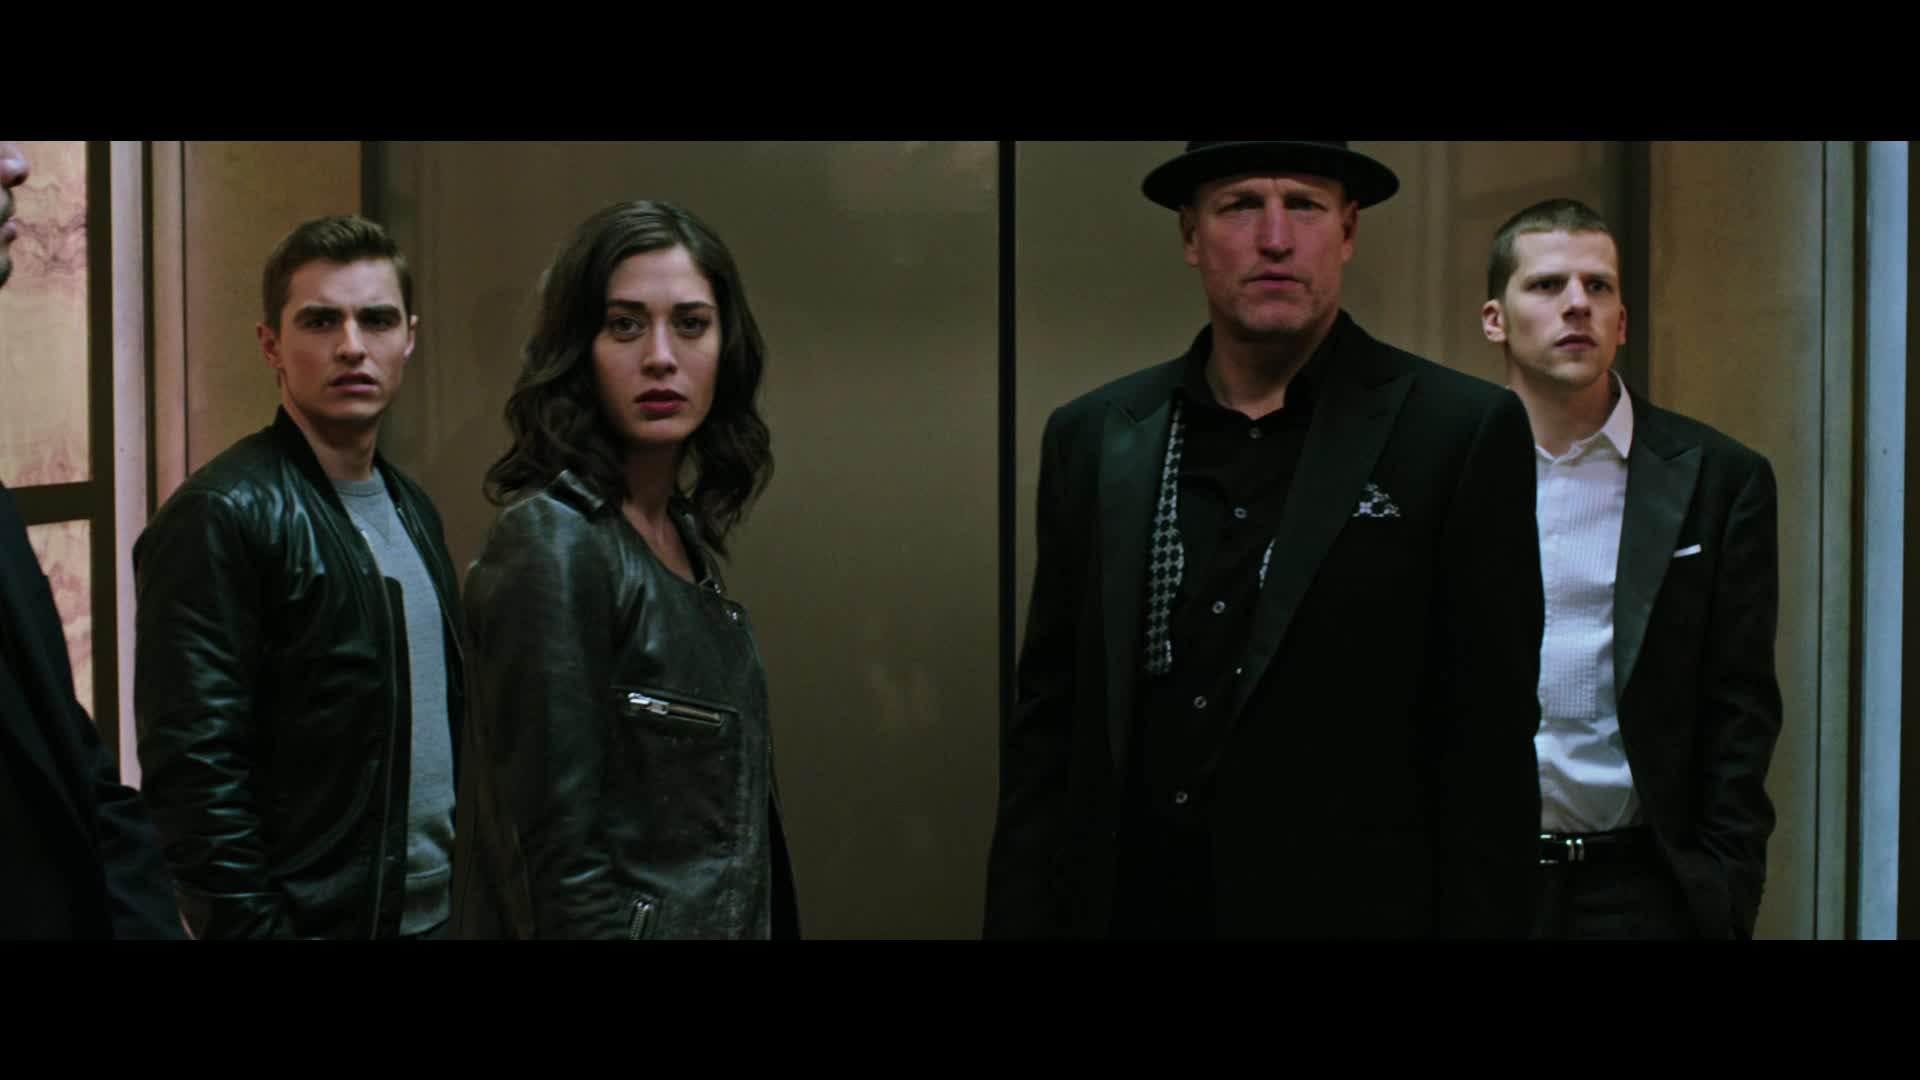 Now You See Me 2 Actors , HD Wallpaper & Backgrounds